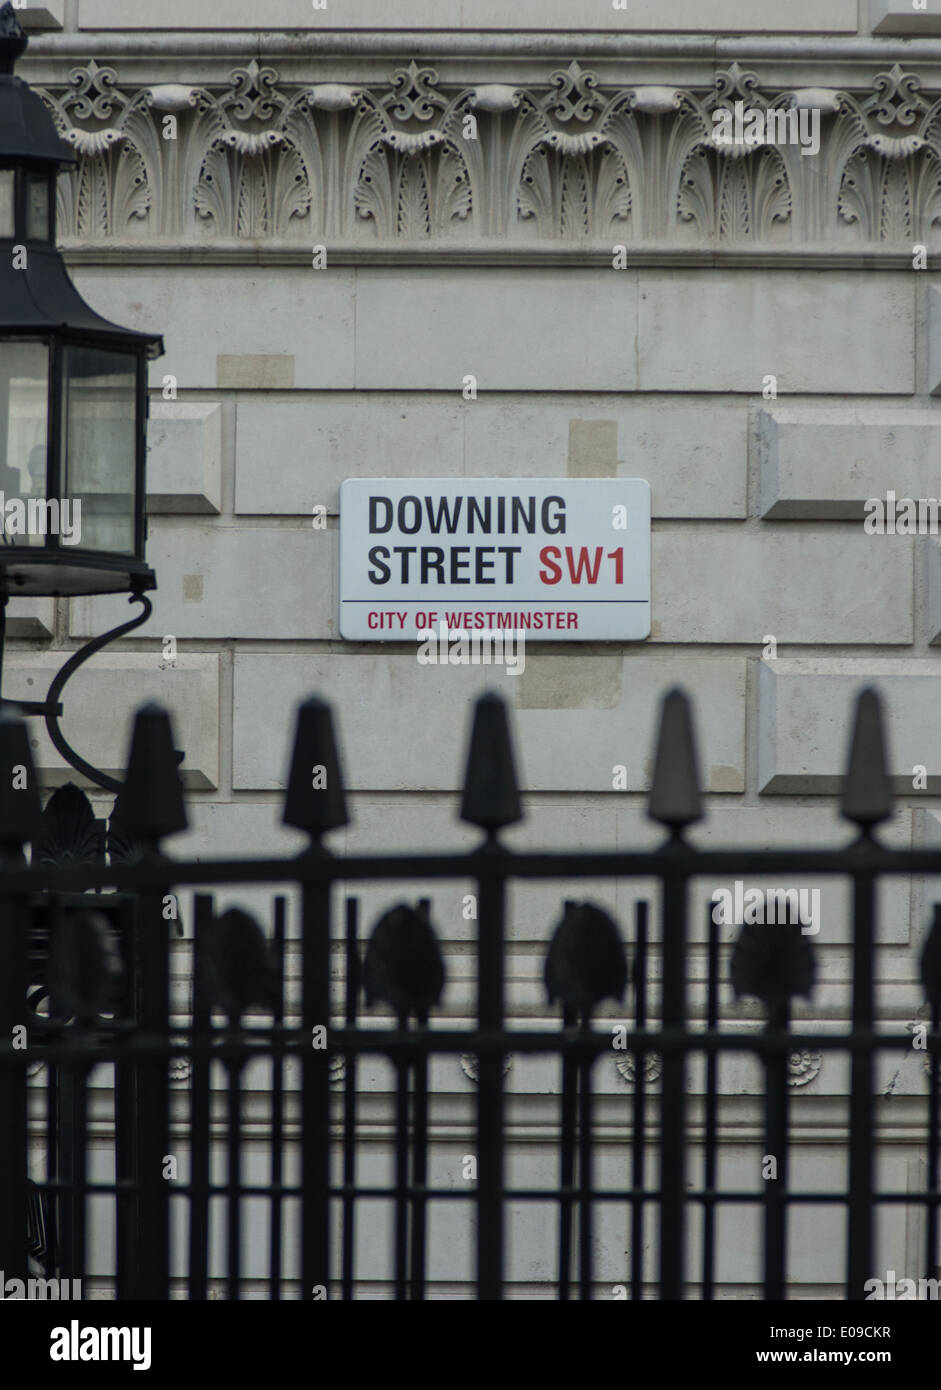 downing street sign, London - Stock Image